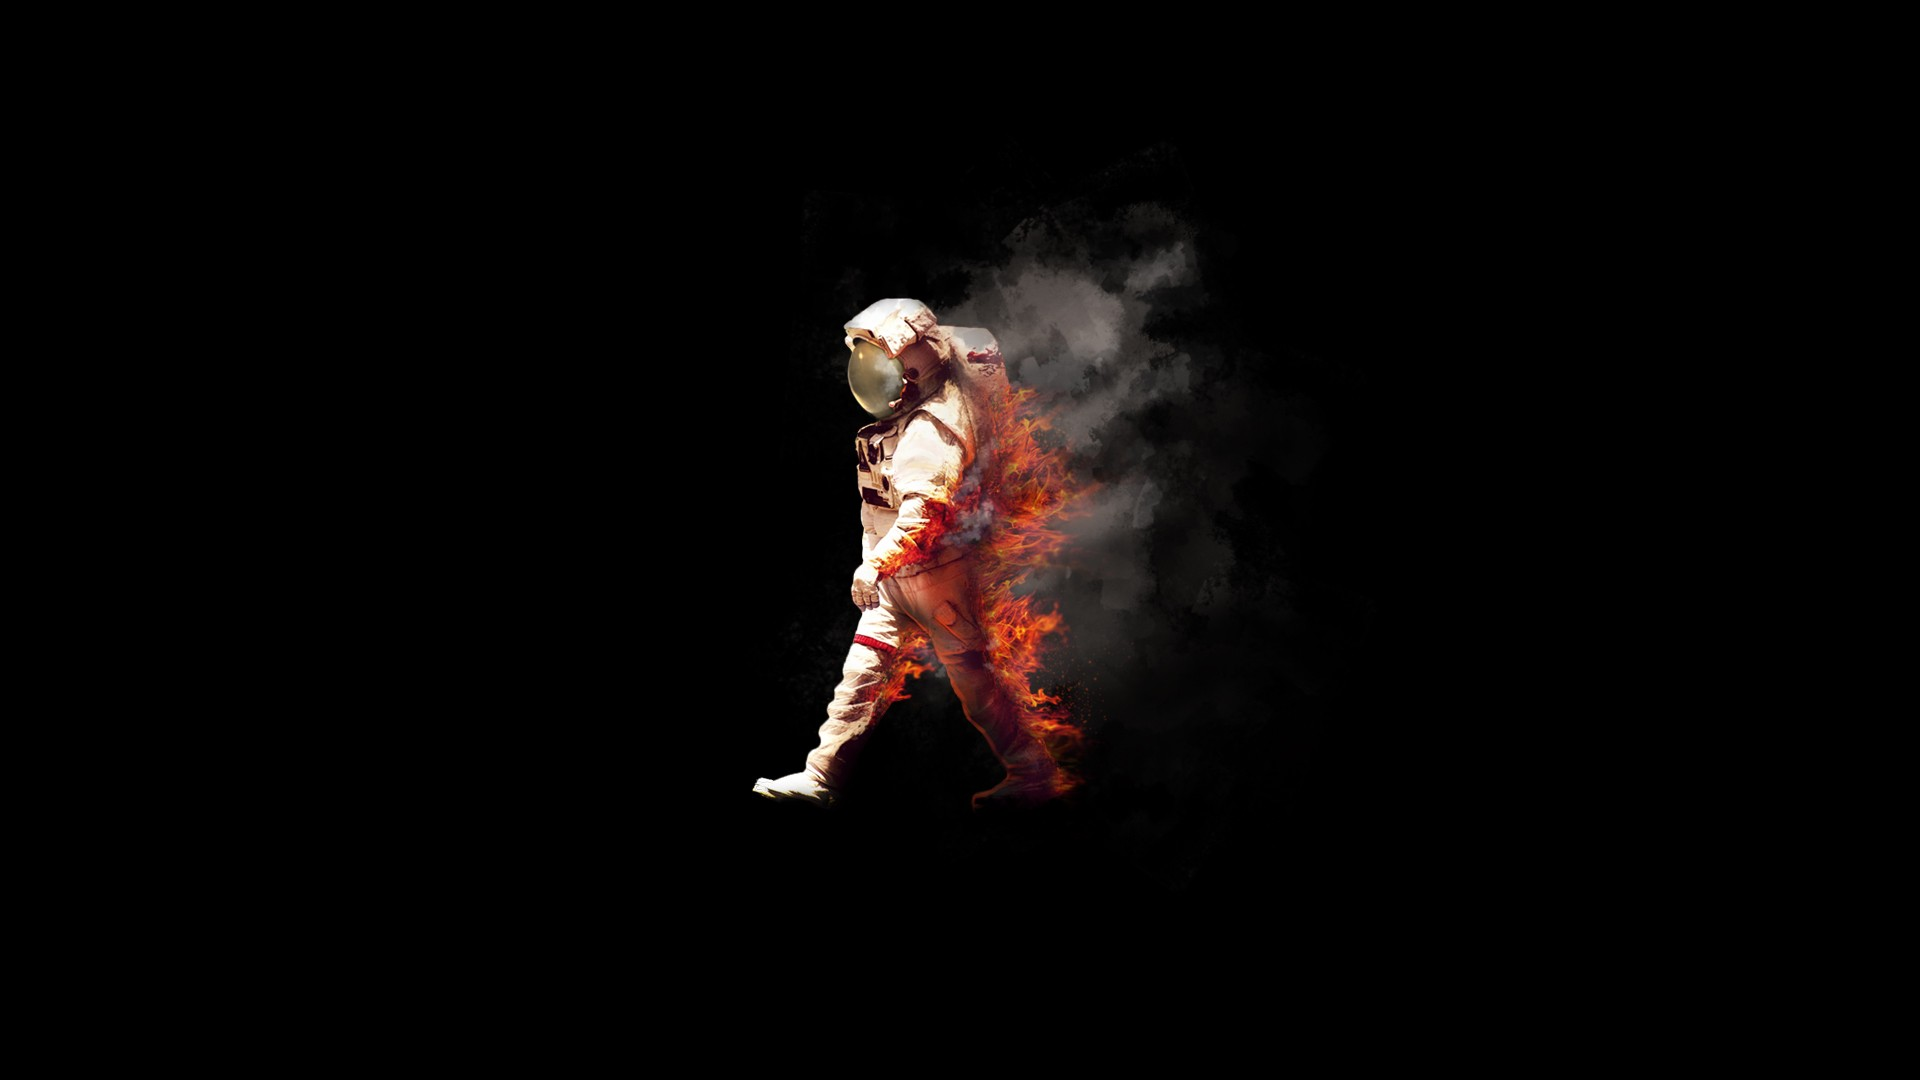 2944483-astronaut-space-fire-burn-spacesuit-nasa-spaceman-minimalism-abstract-burning___abstract-wallpapers.jpg